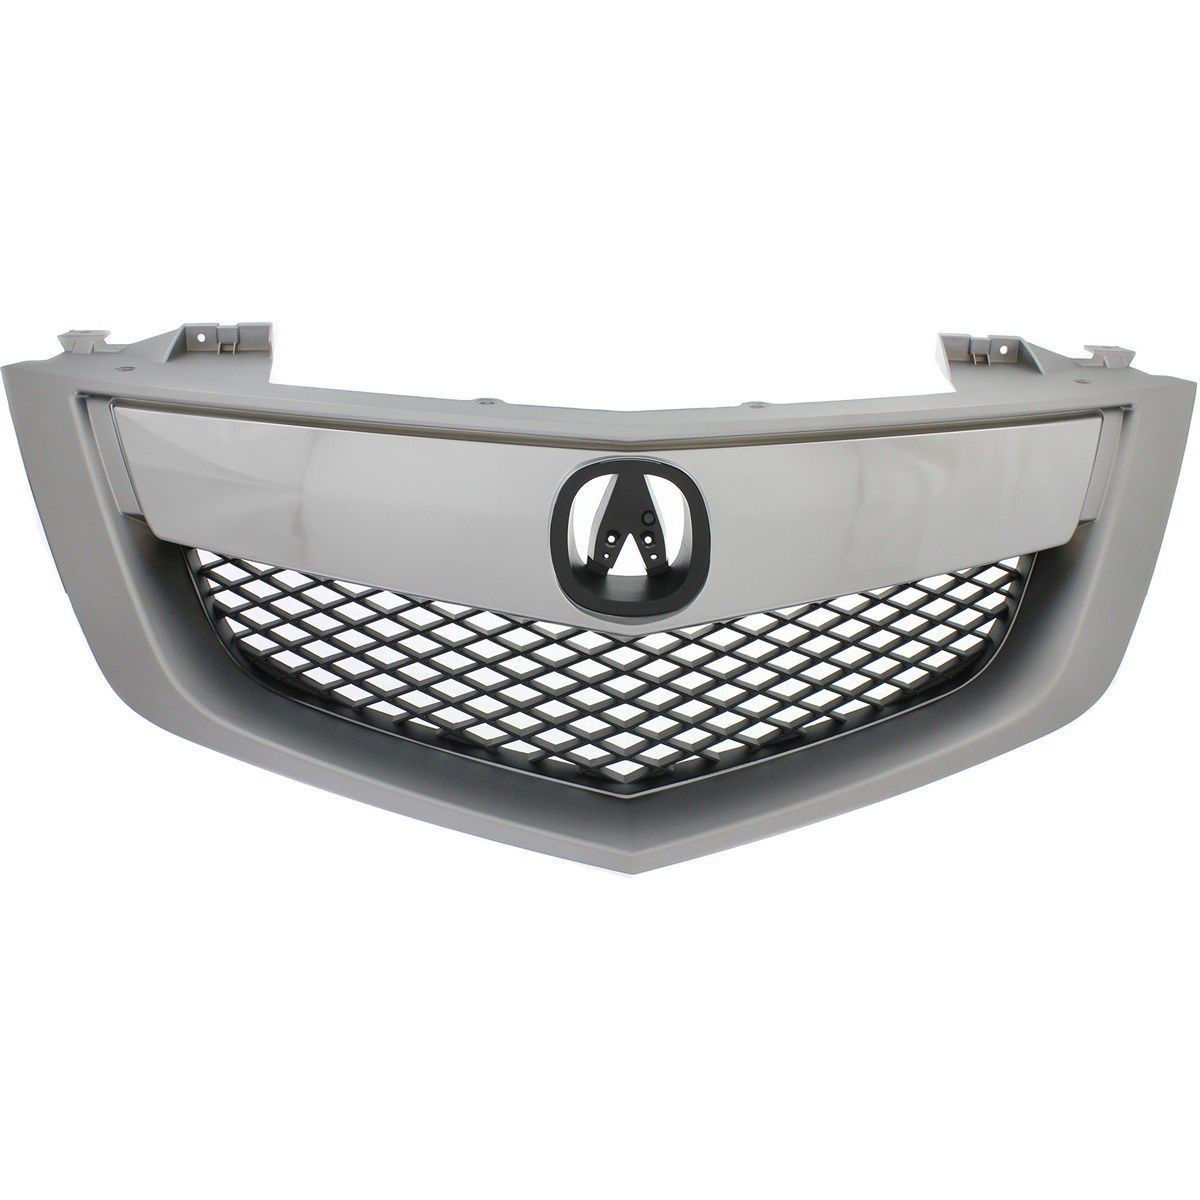 NEW GRILLE SURROUND FRONT FITS 2010-2012 ACURA RDX 71123STKA01ZA